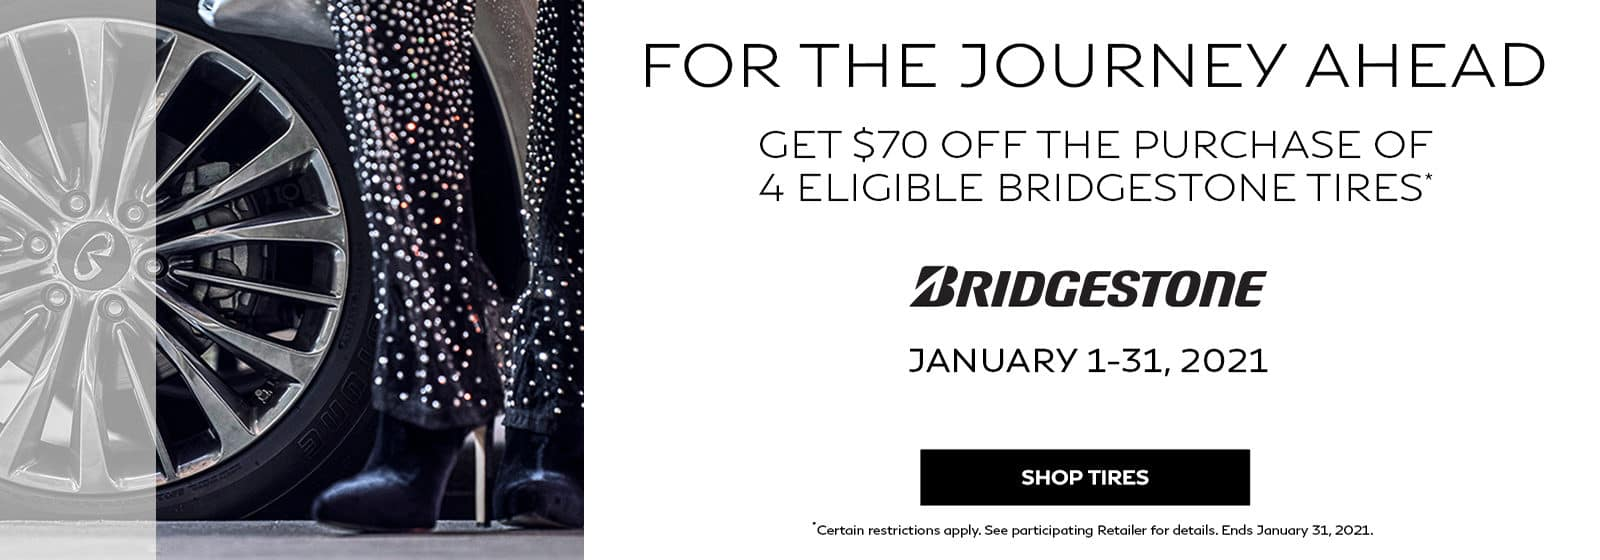 For the journey ahead. Get $70 off the purchase of 4 eligible Bridgestone tires. Click to shop tires.